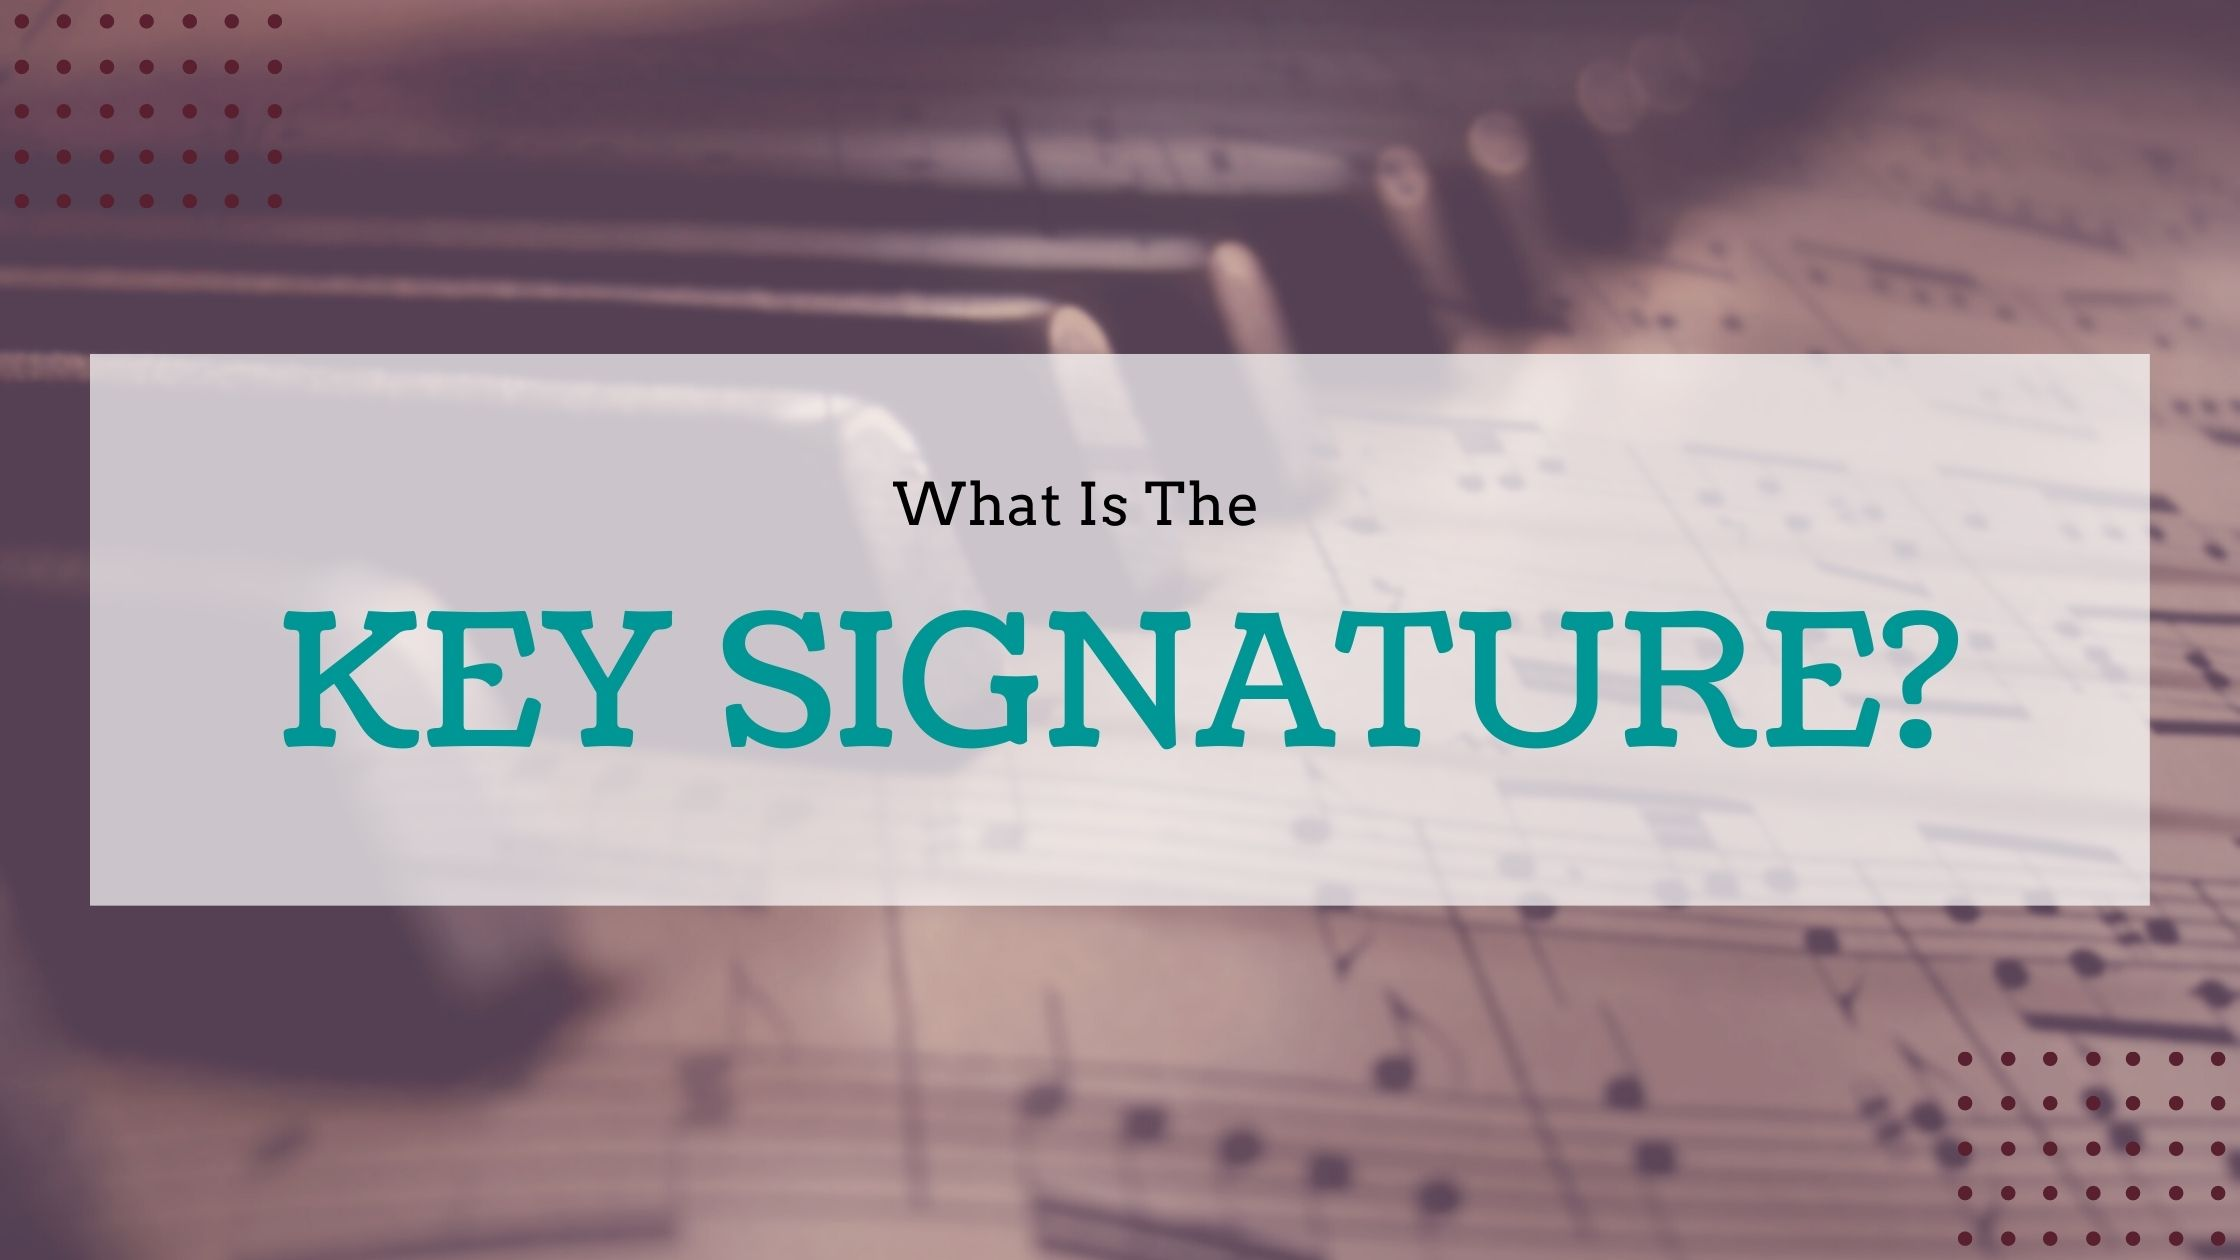 What is the minor key signature